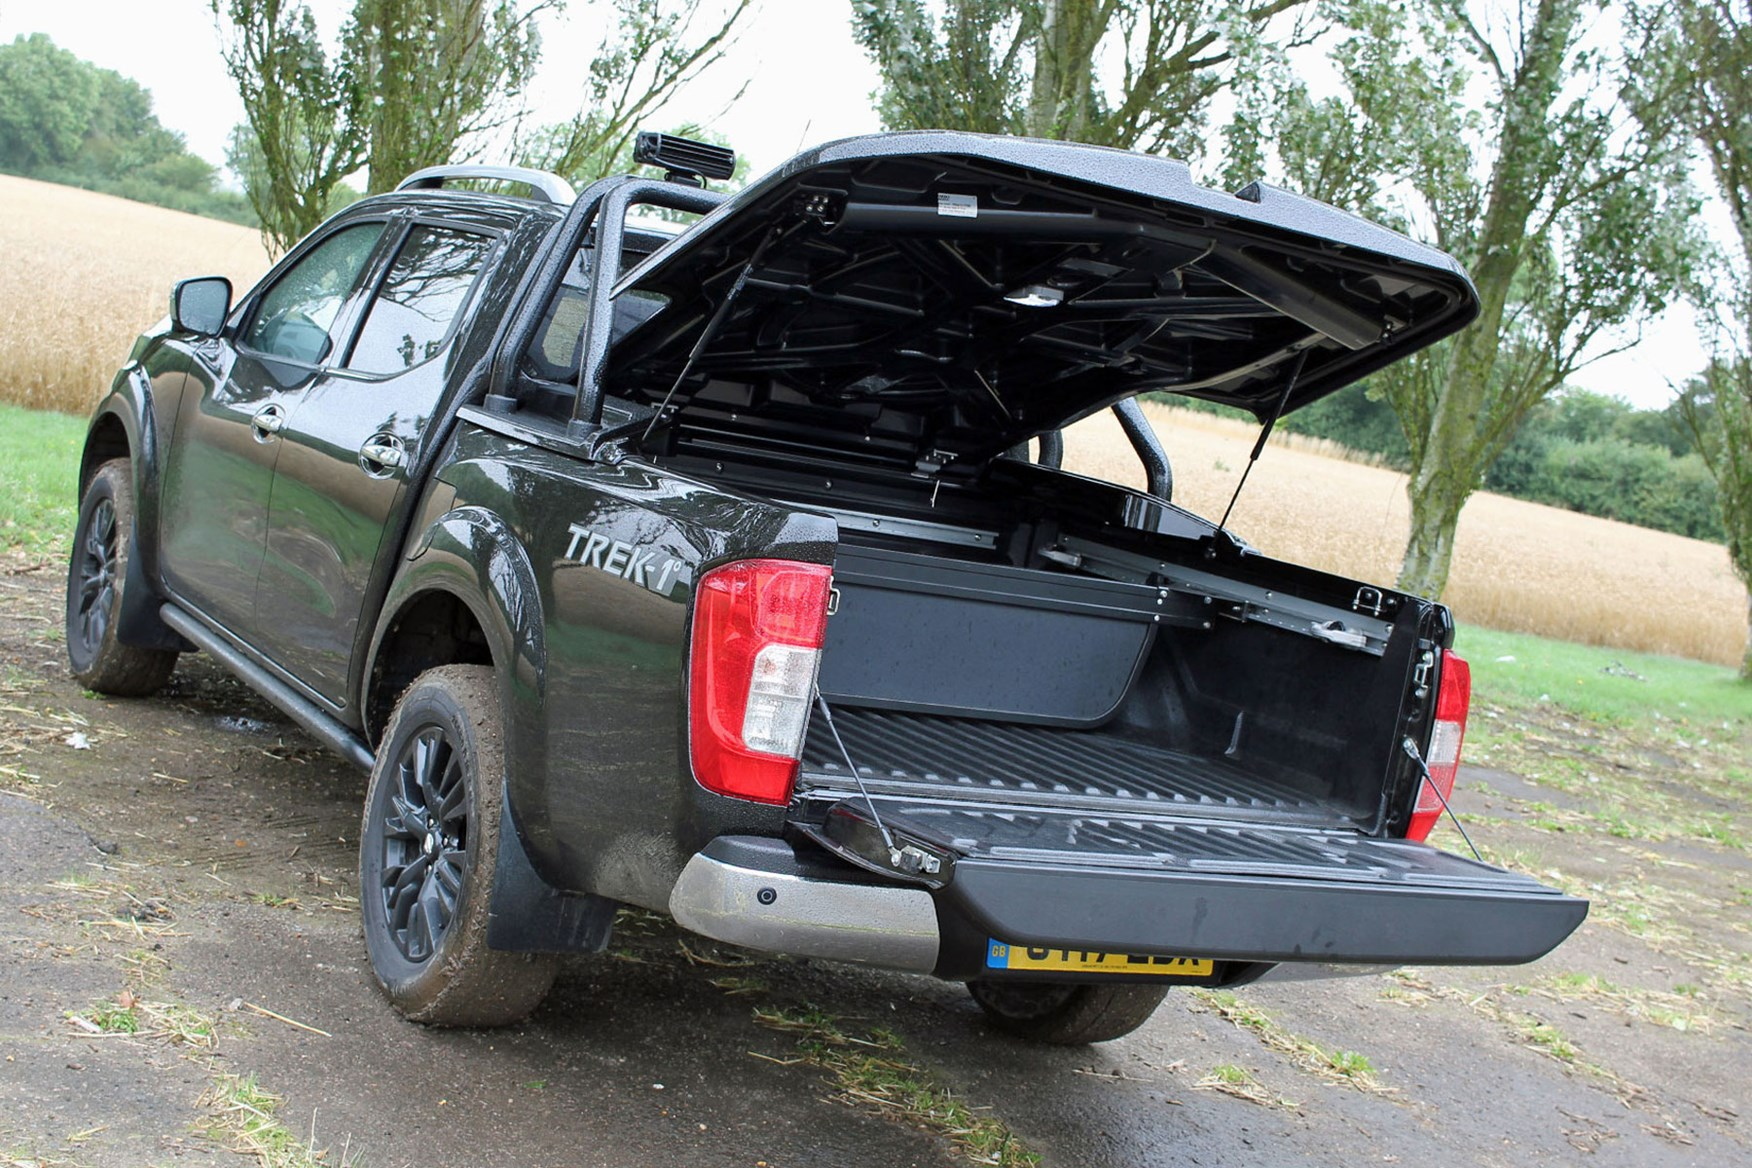 Nissan Navara Trek-1 review - rear view, black, with aero load cover canopy open